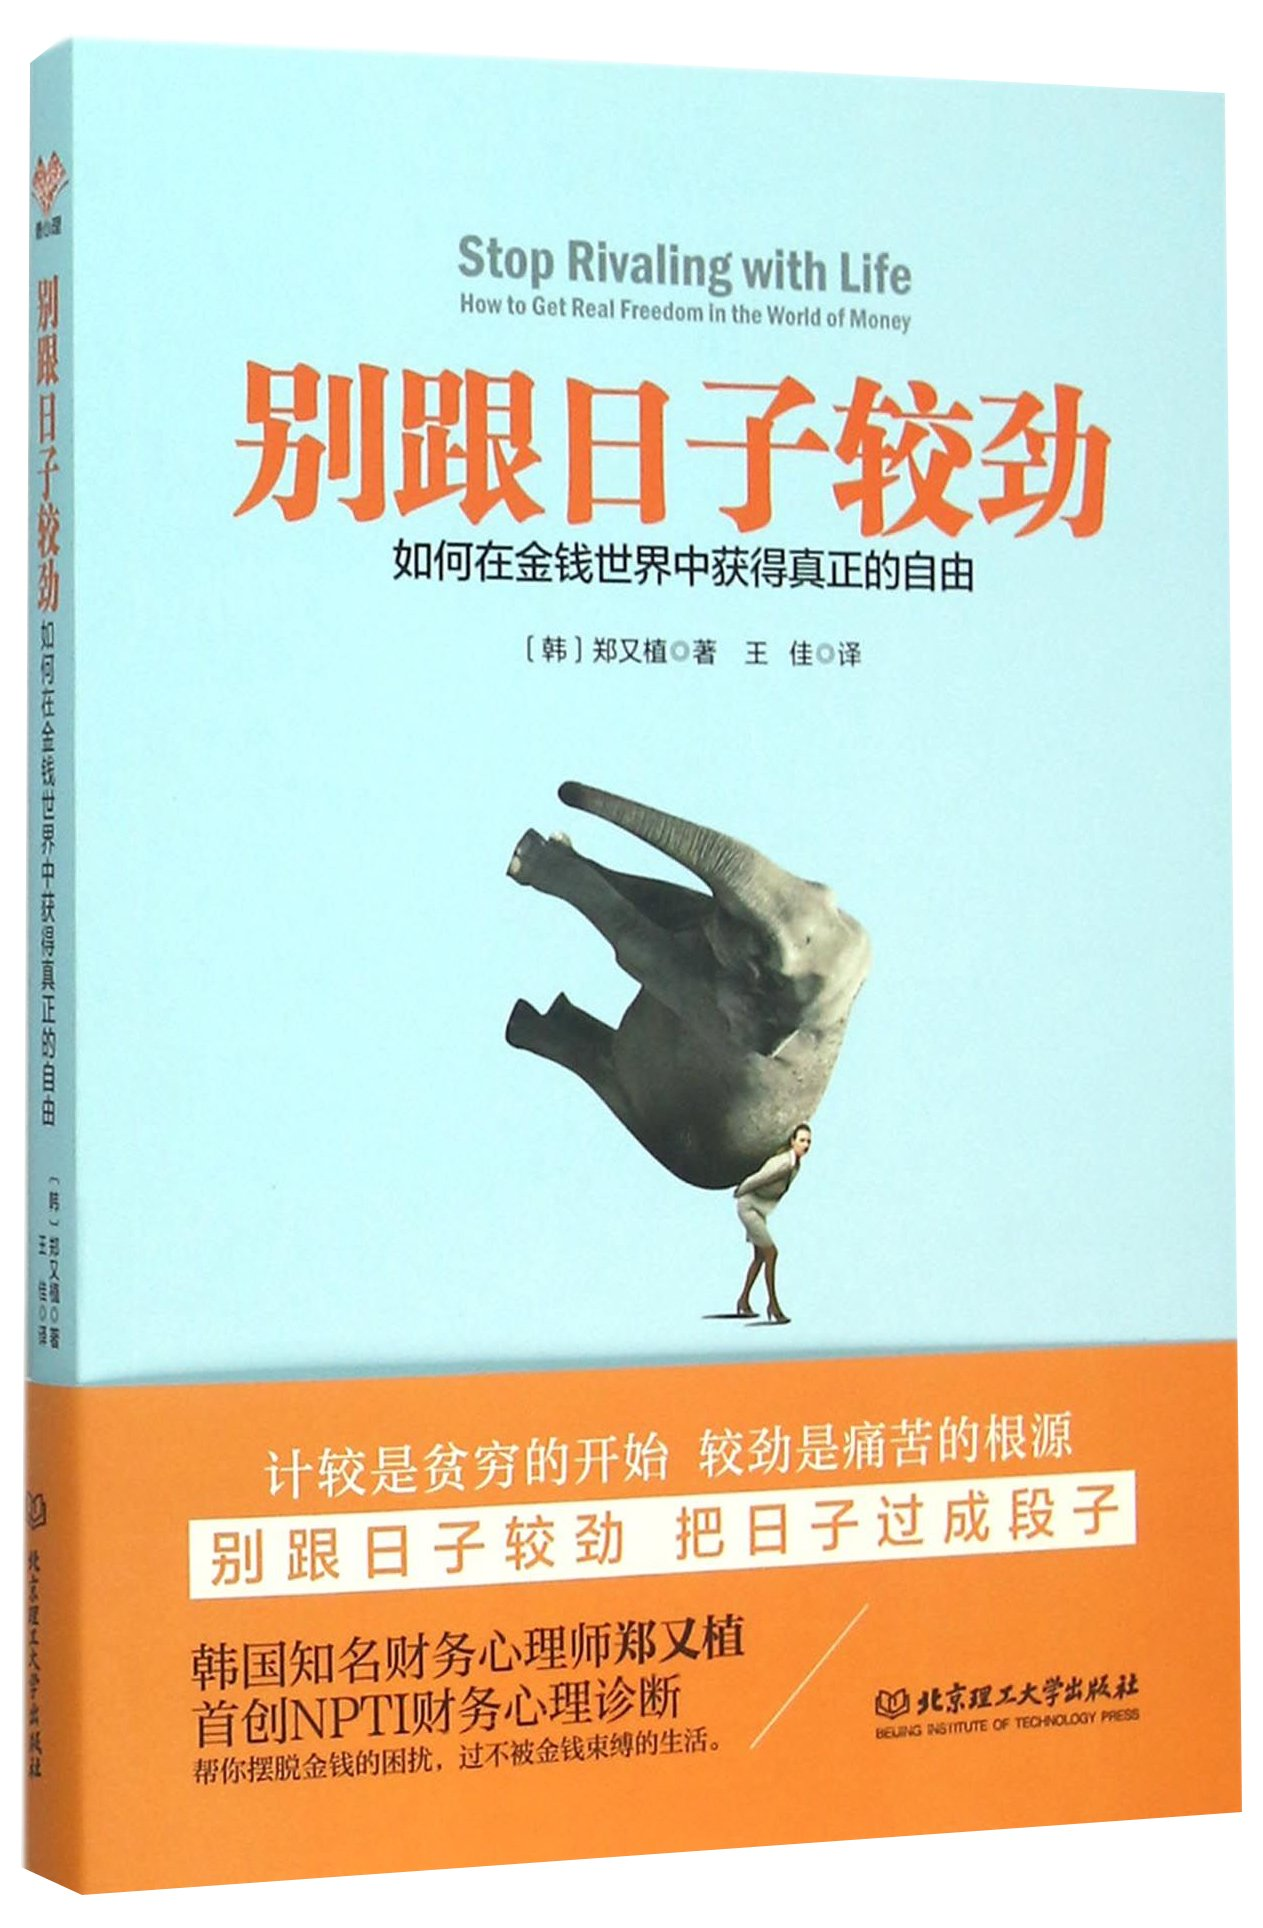 Download Do Not Be Rivalry with Life (Chinese Edition) pdf